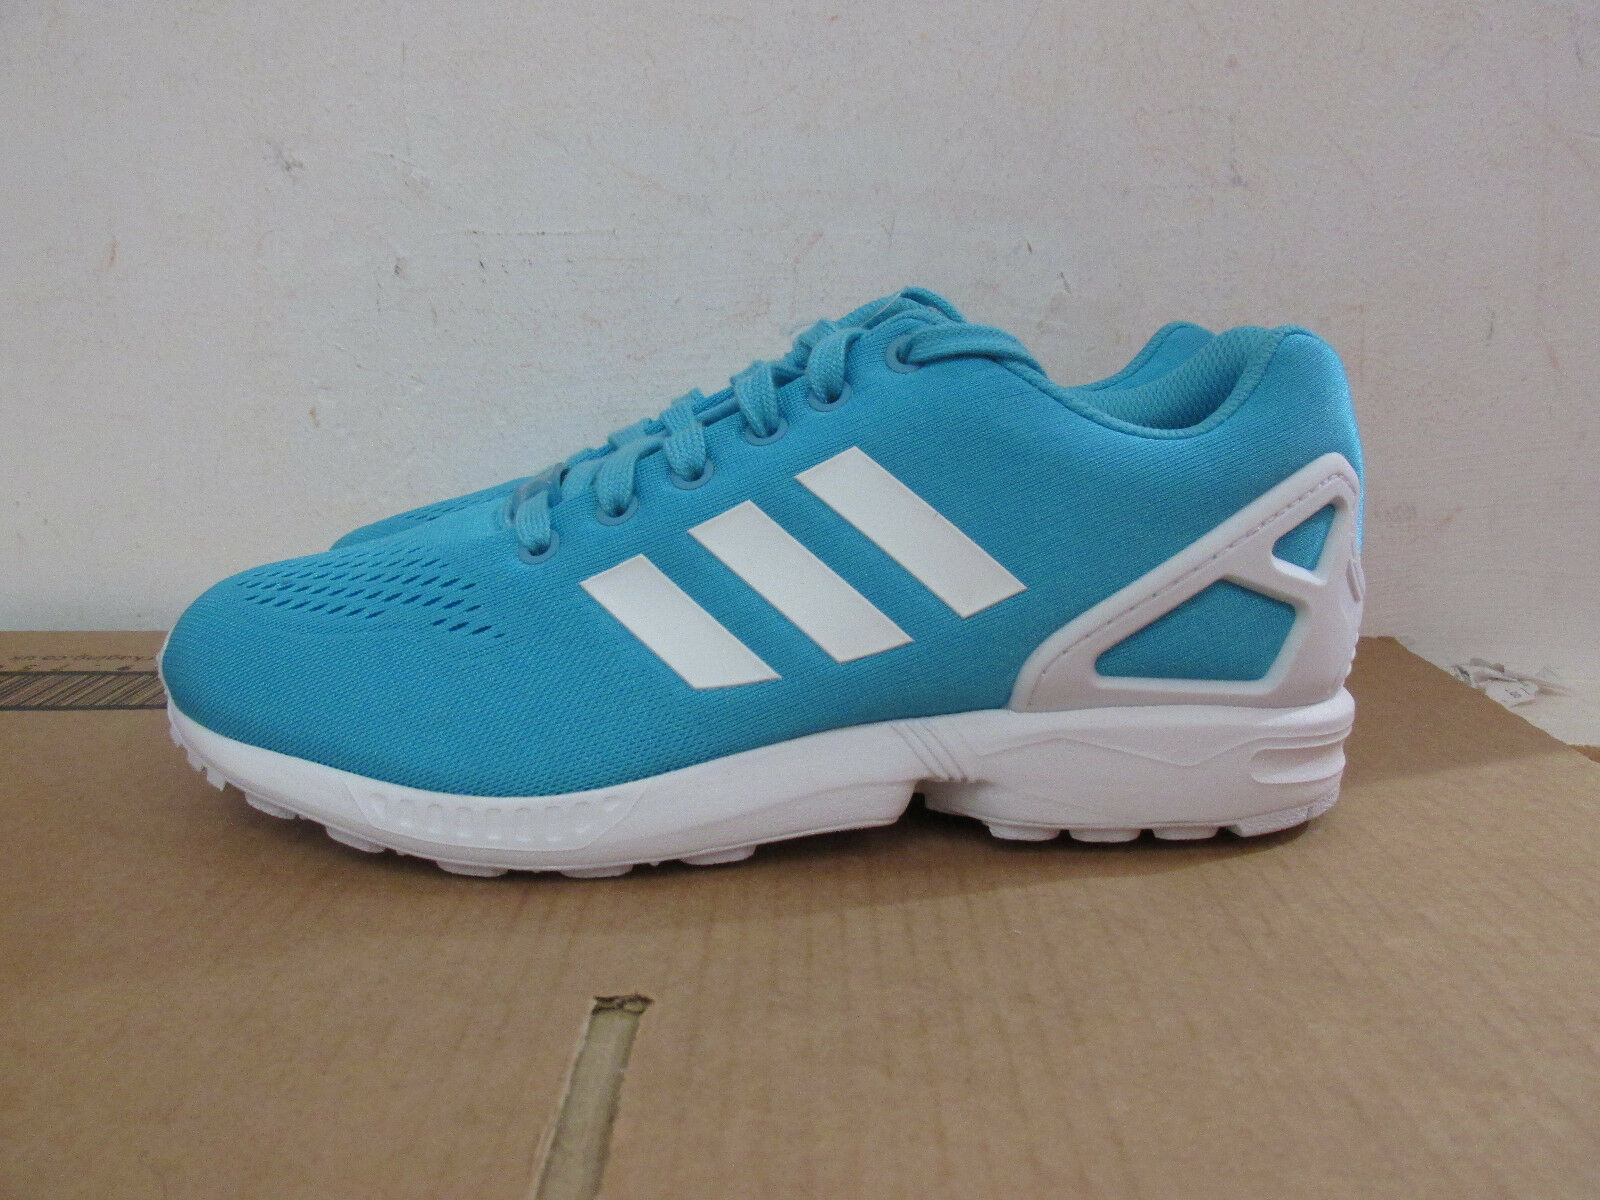 Adidas Flux S80324 mens trainers SAMPLE Turnschuhe SAMPLE trainers 27c823